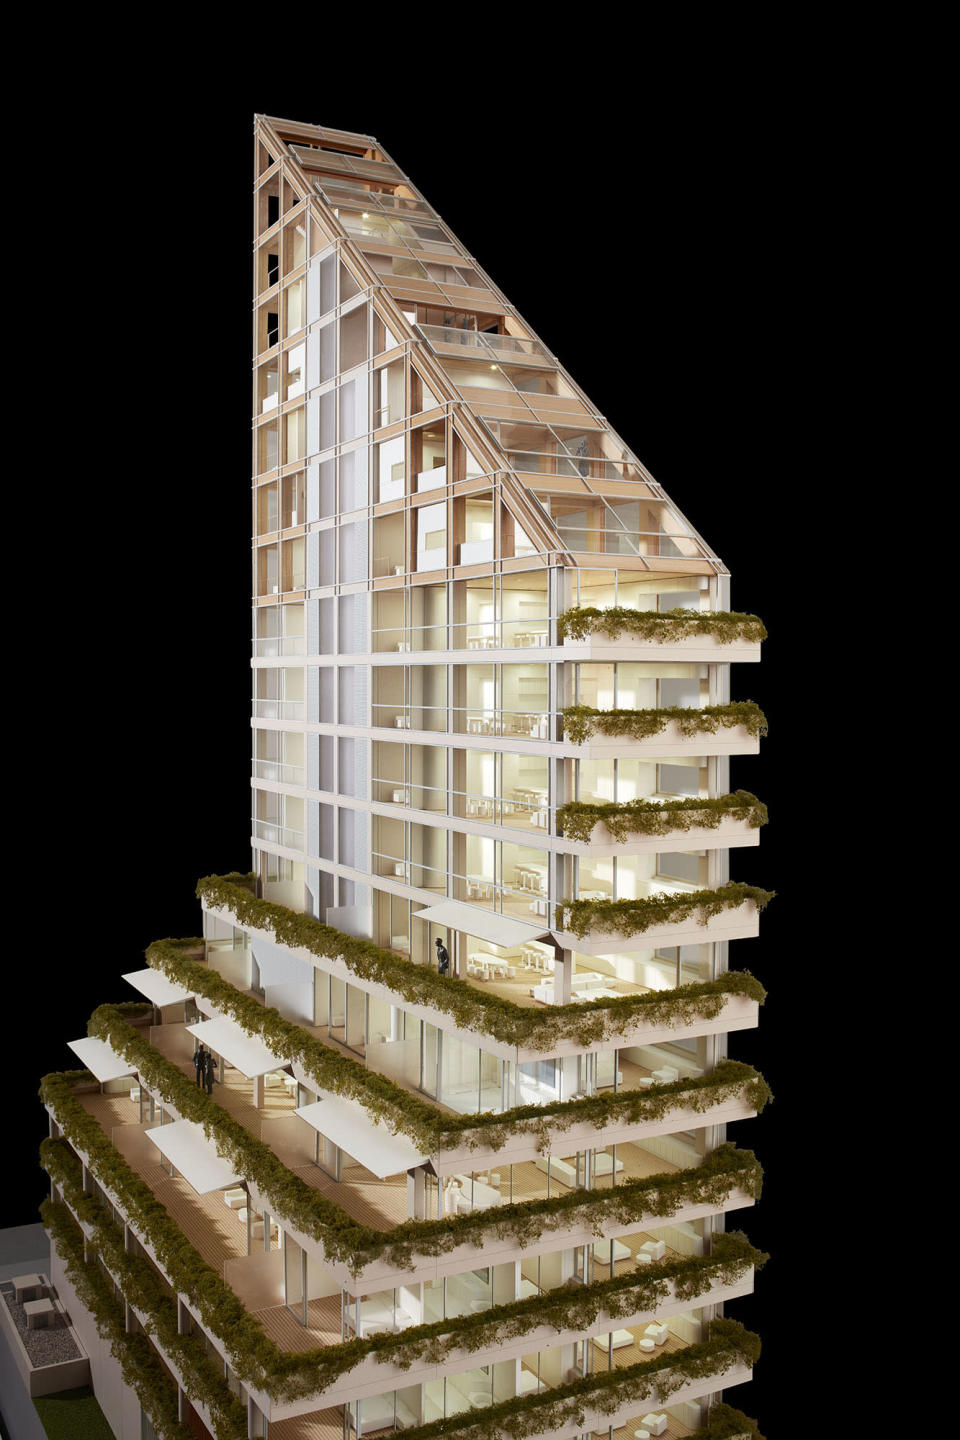 <p>This model shows how greenery is expected to be integrated with Terrace House's exterior, similar to how it is used on Evergreen. (Martin Tessler/Shigeru Ban Architects) </p>